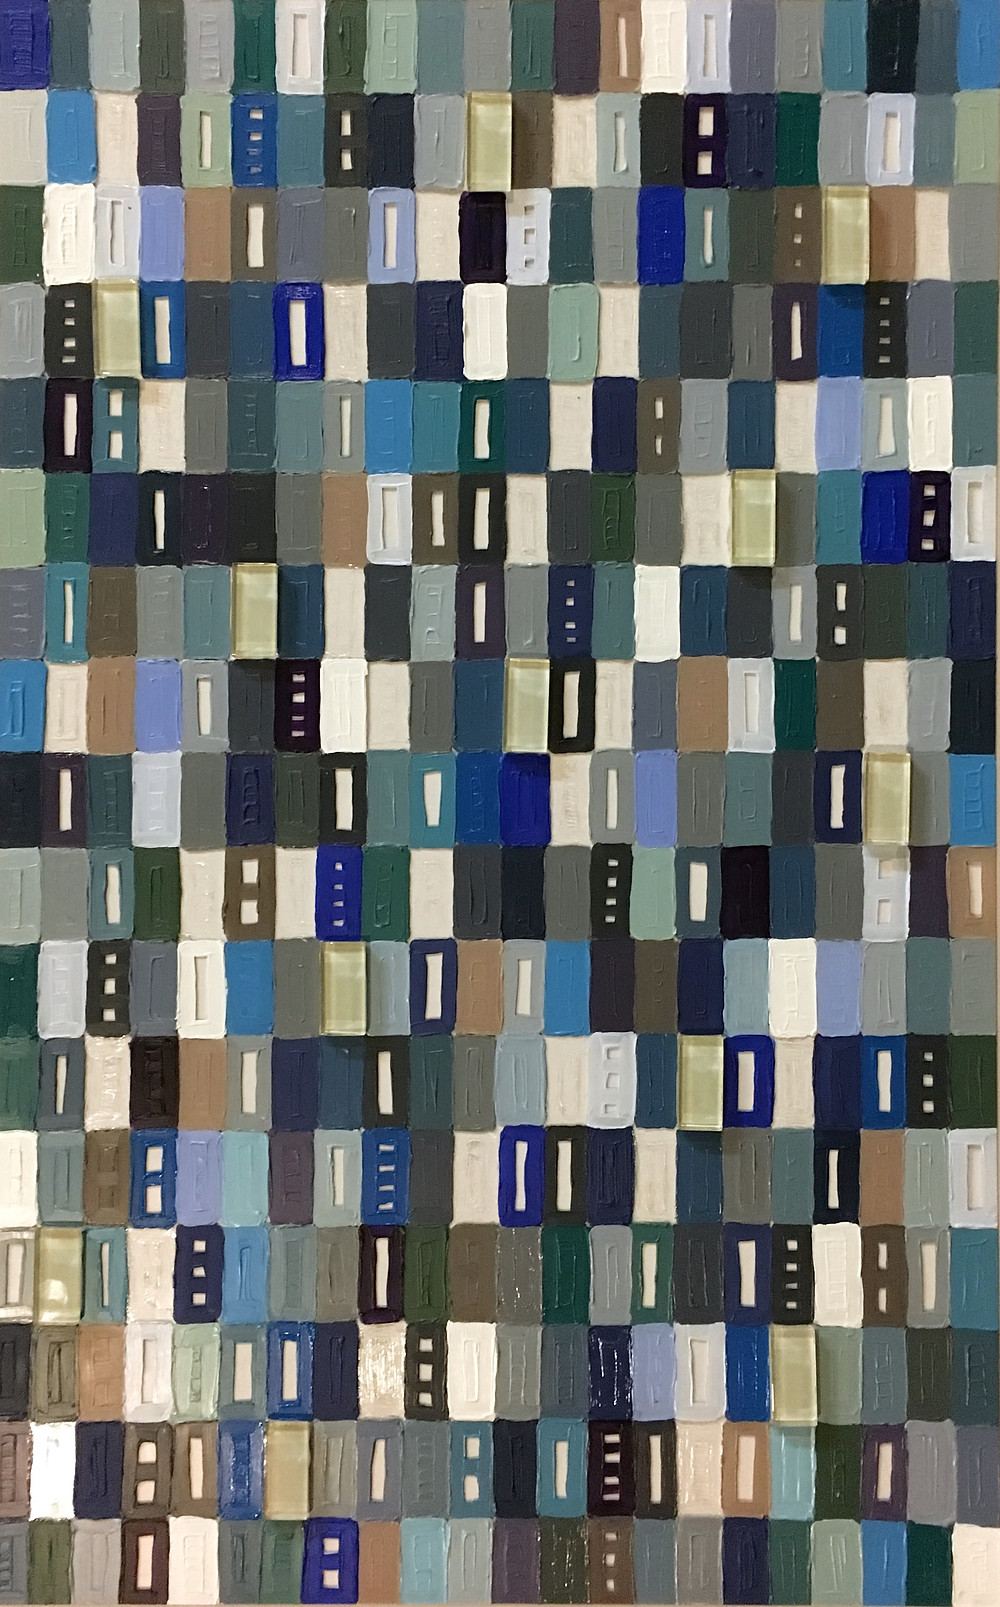 Acrylic and glass tiles, 32x20 inches $900.00